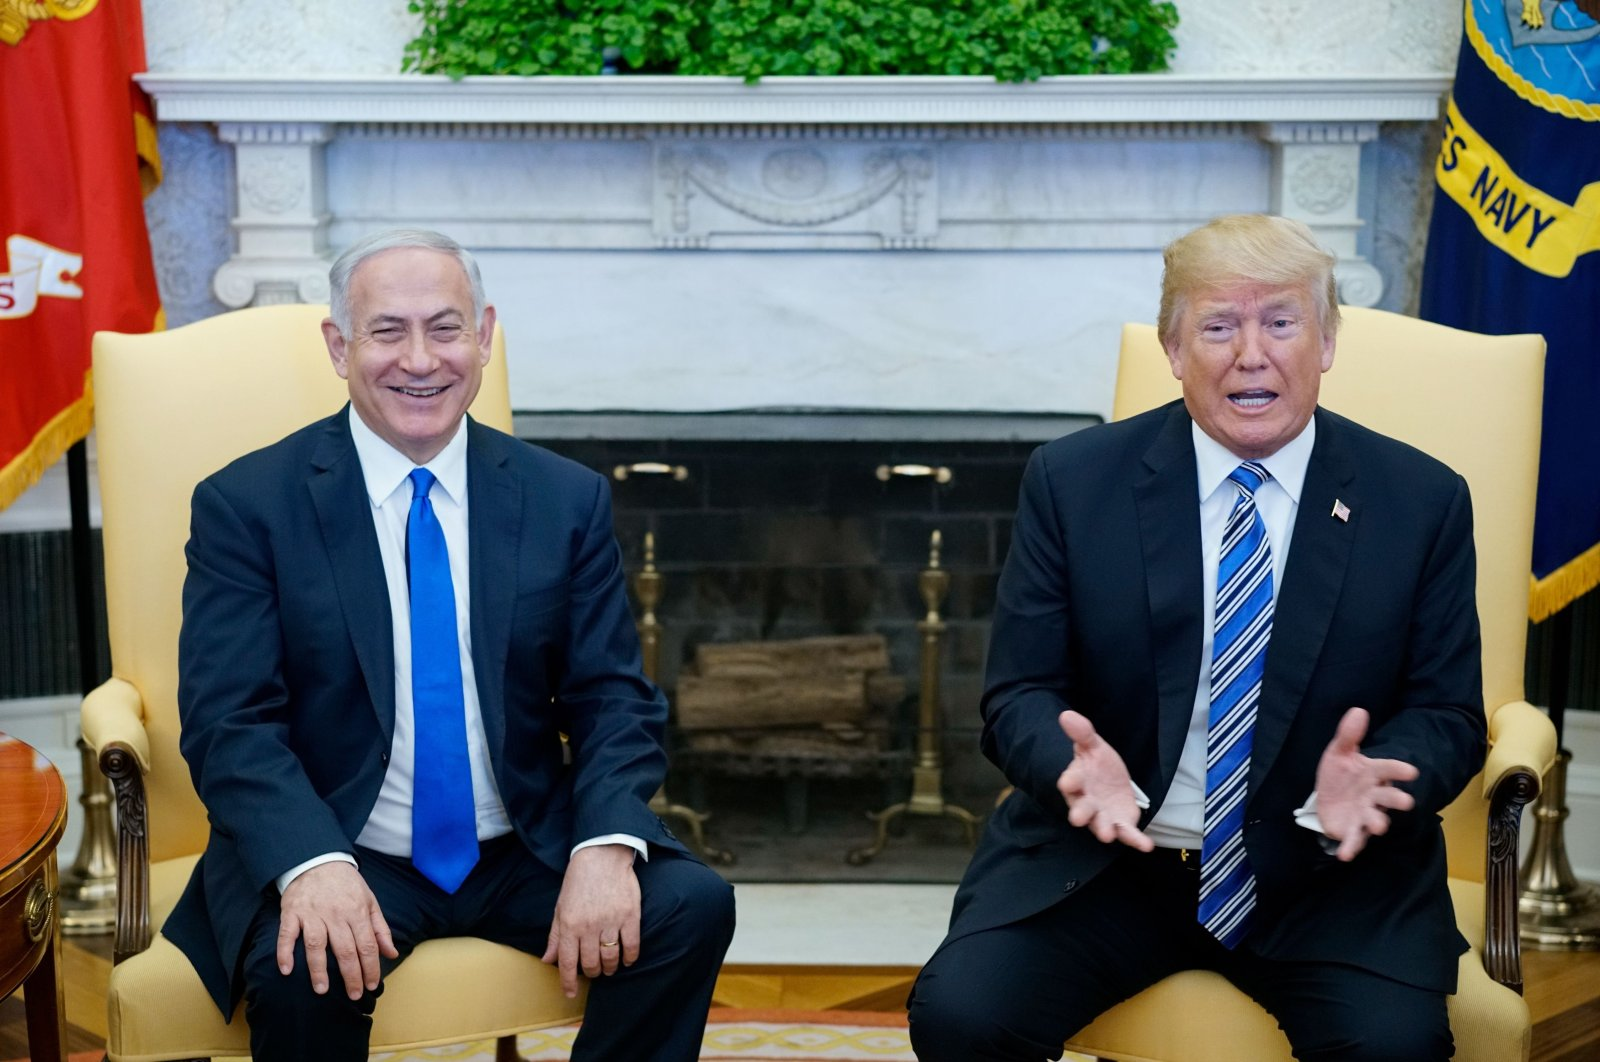 U.S. President Donald Trump speaks during a meeting with Israel's Prime Minister Benjamin Netanyahu in the Oval Office of the White House, Washington, D.C., March 5, 2018. (AFP Photo)